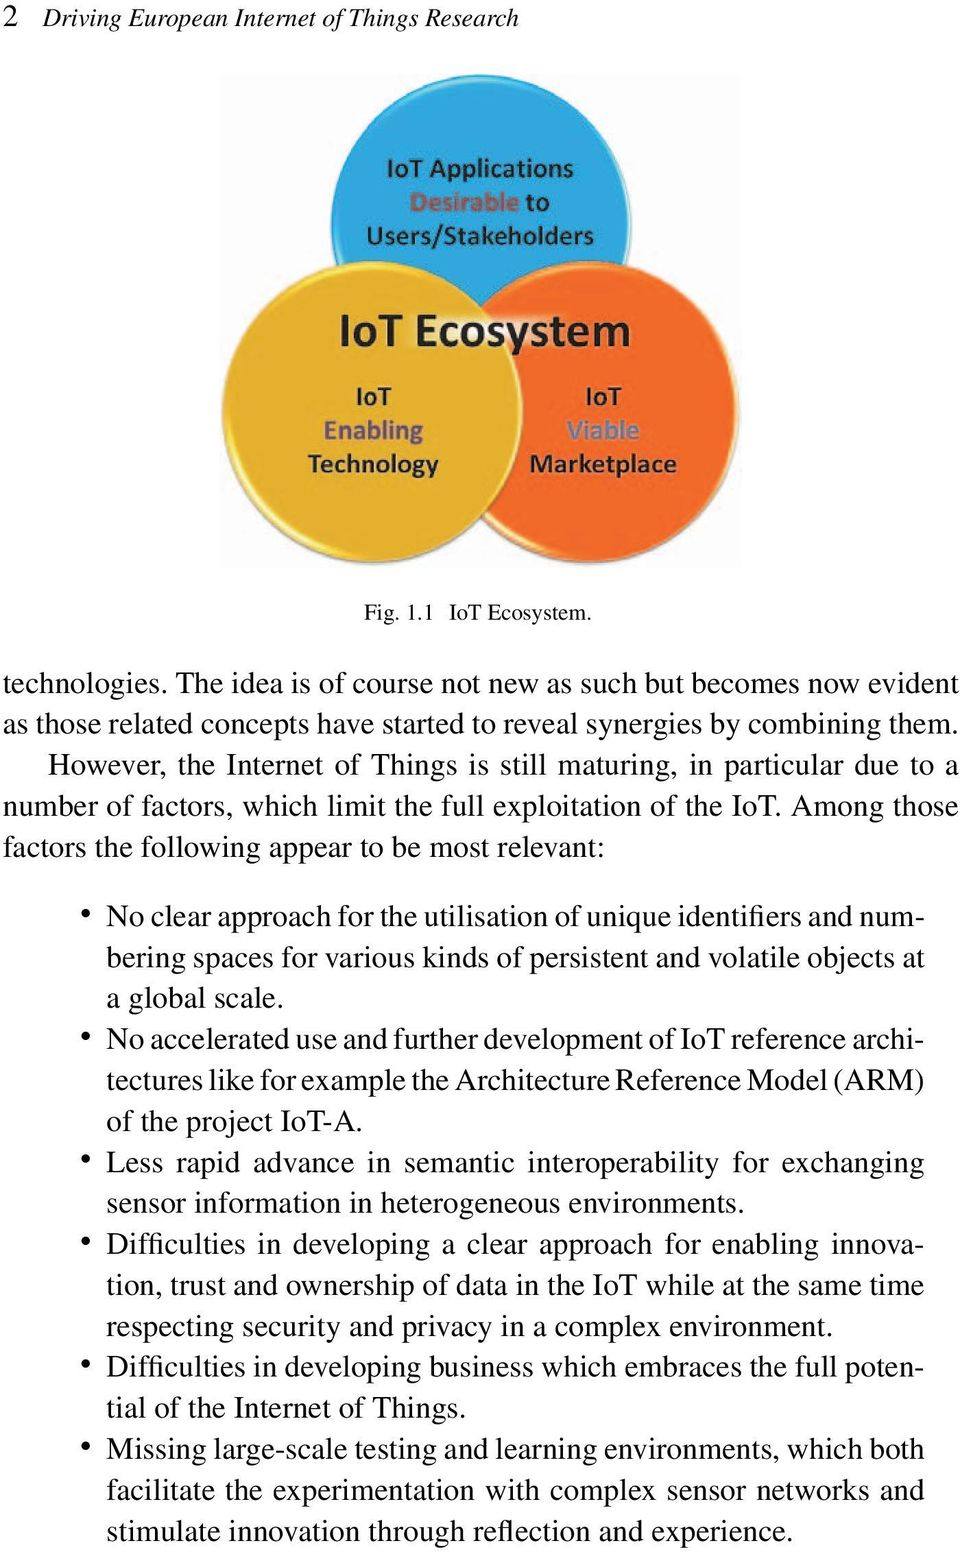 However, the Internet of Things is still maturing, in particular due to a number of factors, which limit the full exploitation of the IoT.